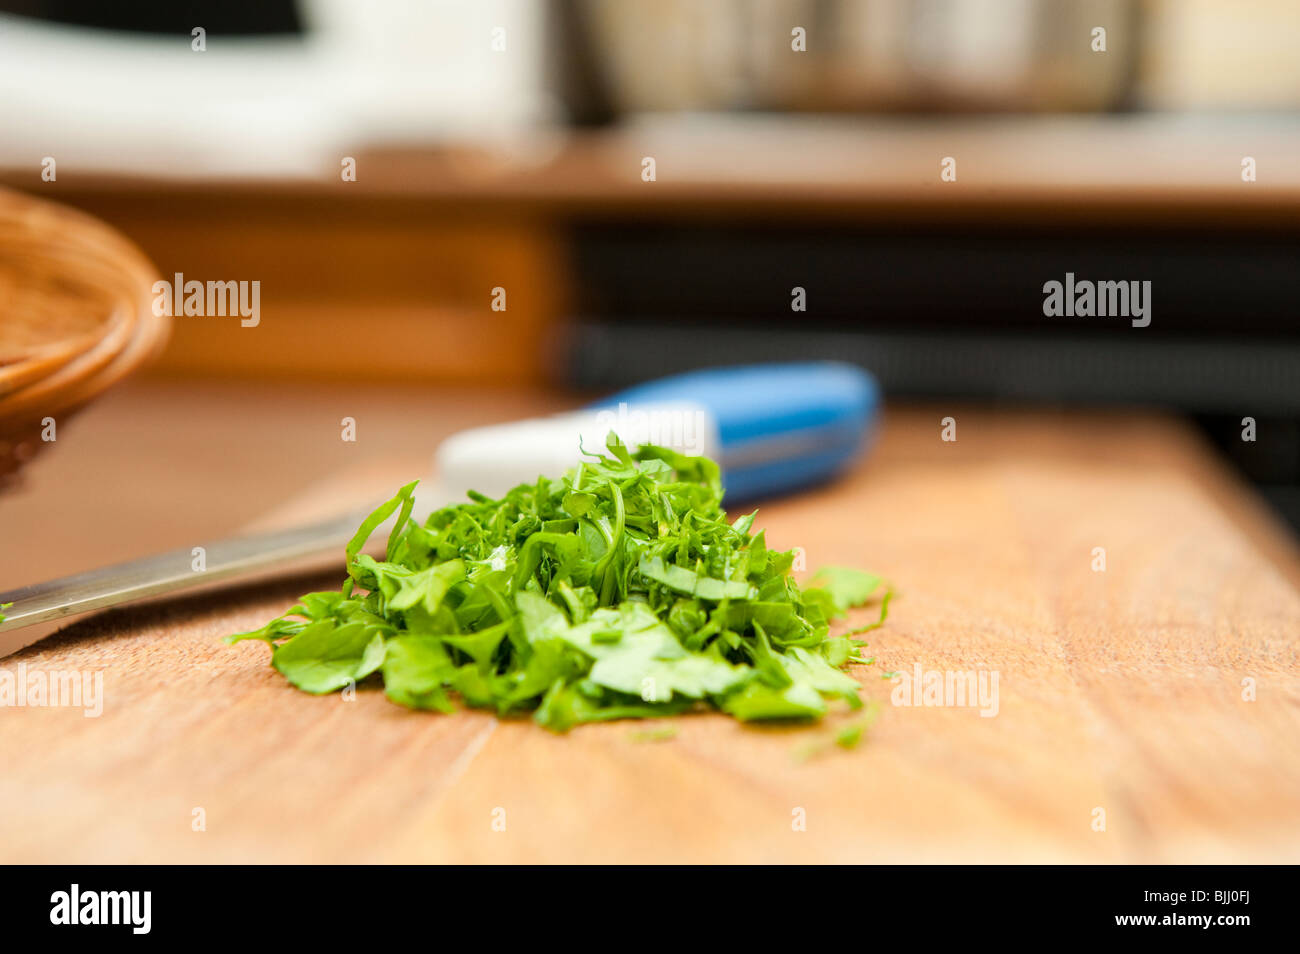 some parsley chopped on a wooden board ready to be used as an ingredient - Stock Image